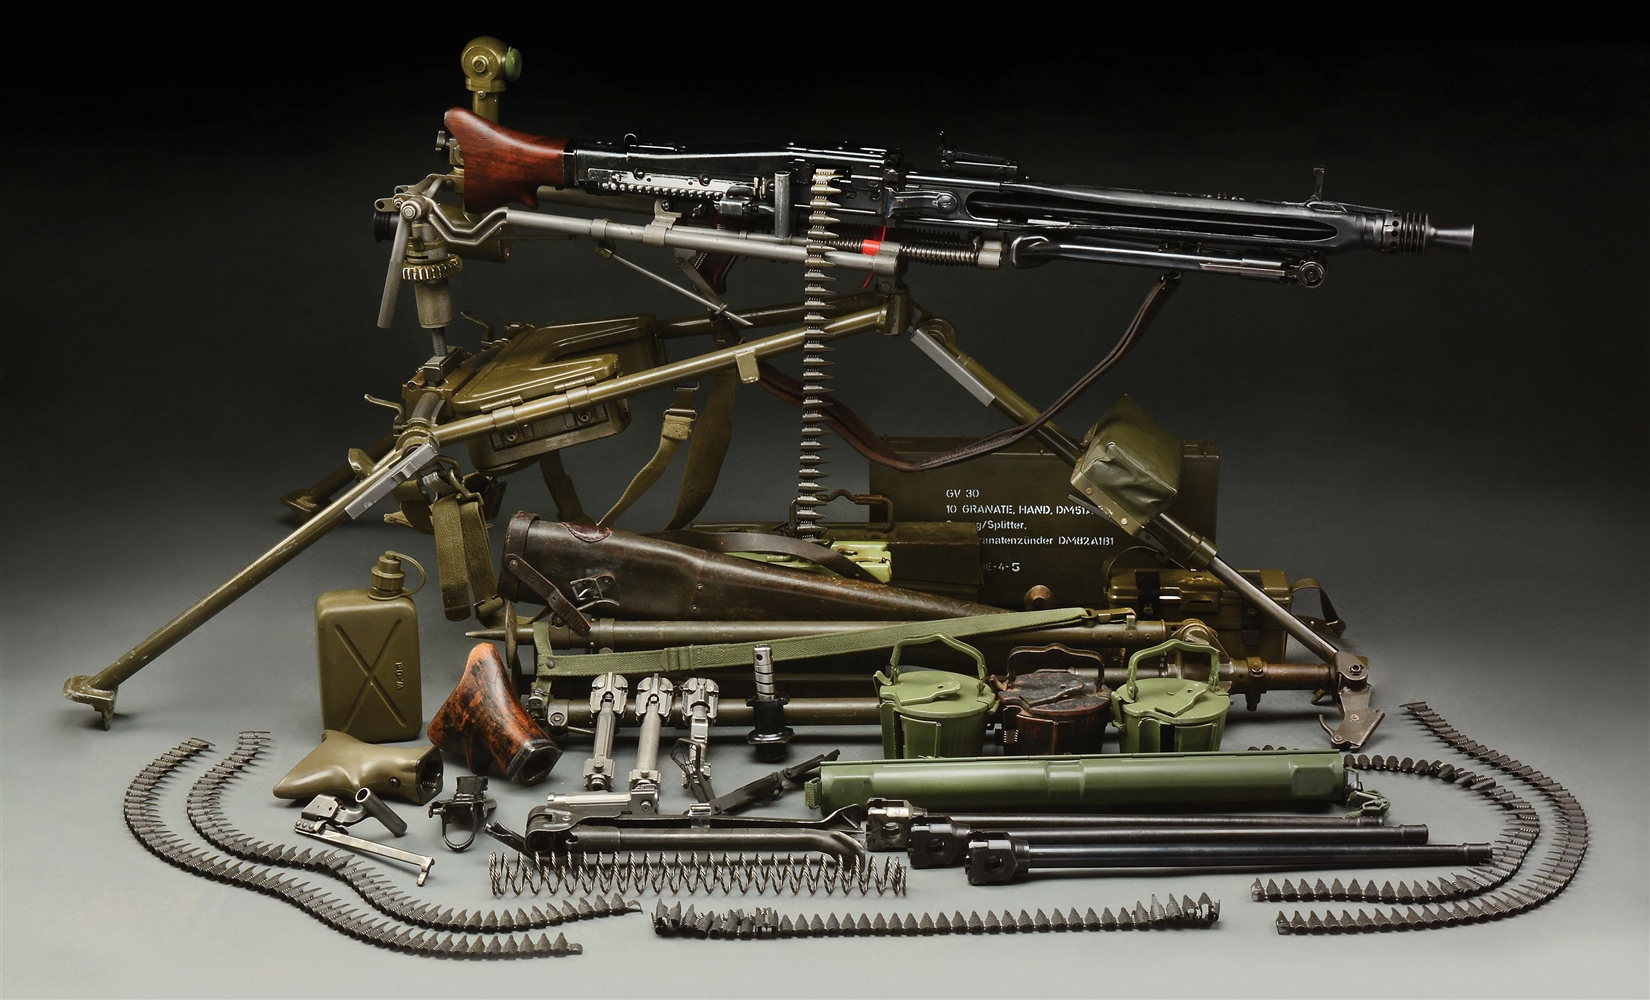 (N) ICONIC GERMAN WORLD WAR II MG-42 MACHINE GUN ON MG3 MOUNT WITH NUMEROUS ACCESSORIES (CURIO AND RELIC).